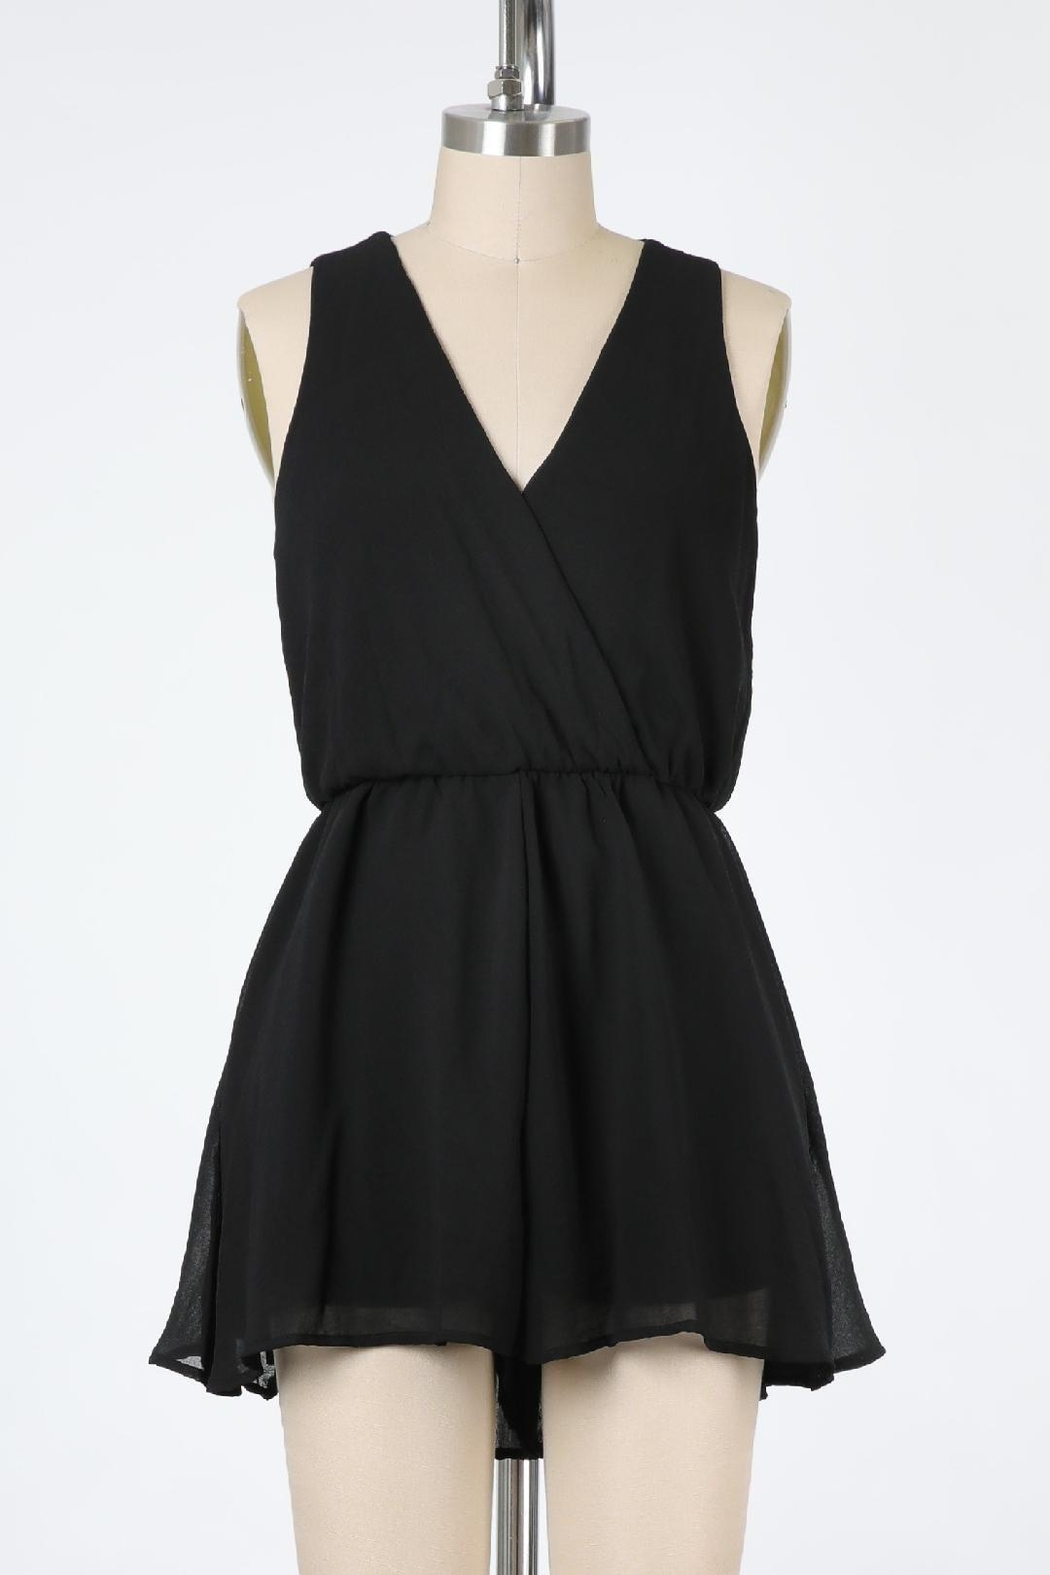 Final Touch Ballerina Dreams Lined Chiffon Romper In Midnight Black And Petal Pink - Main Image